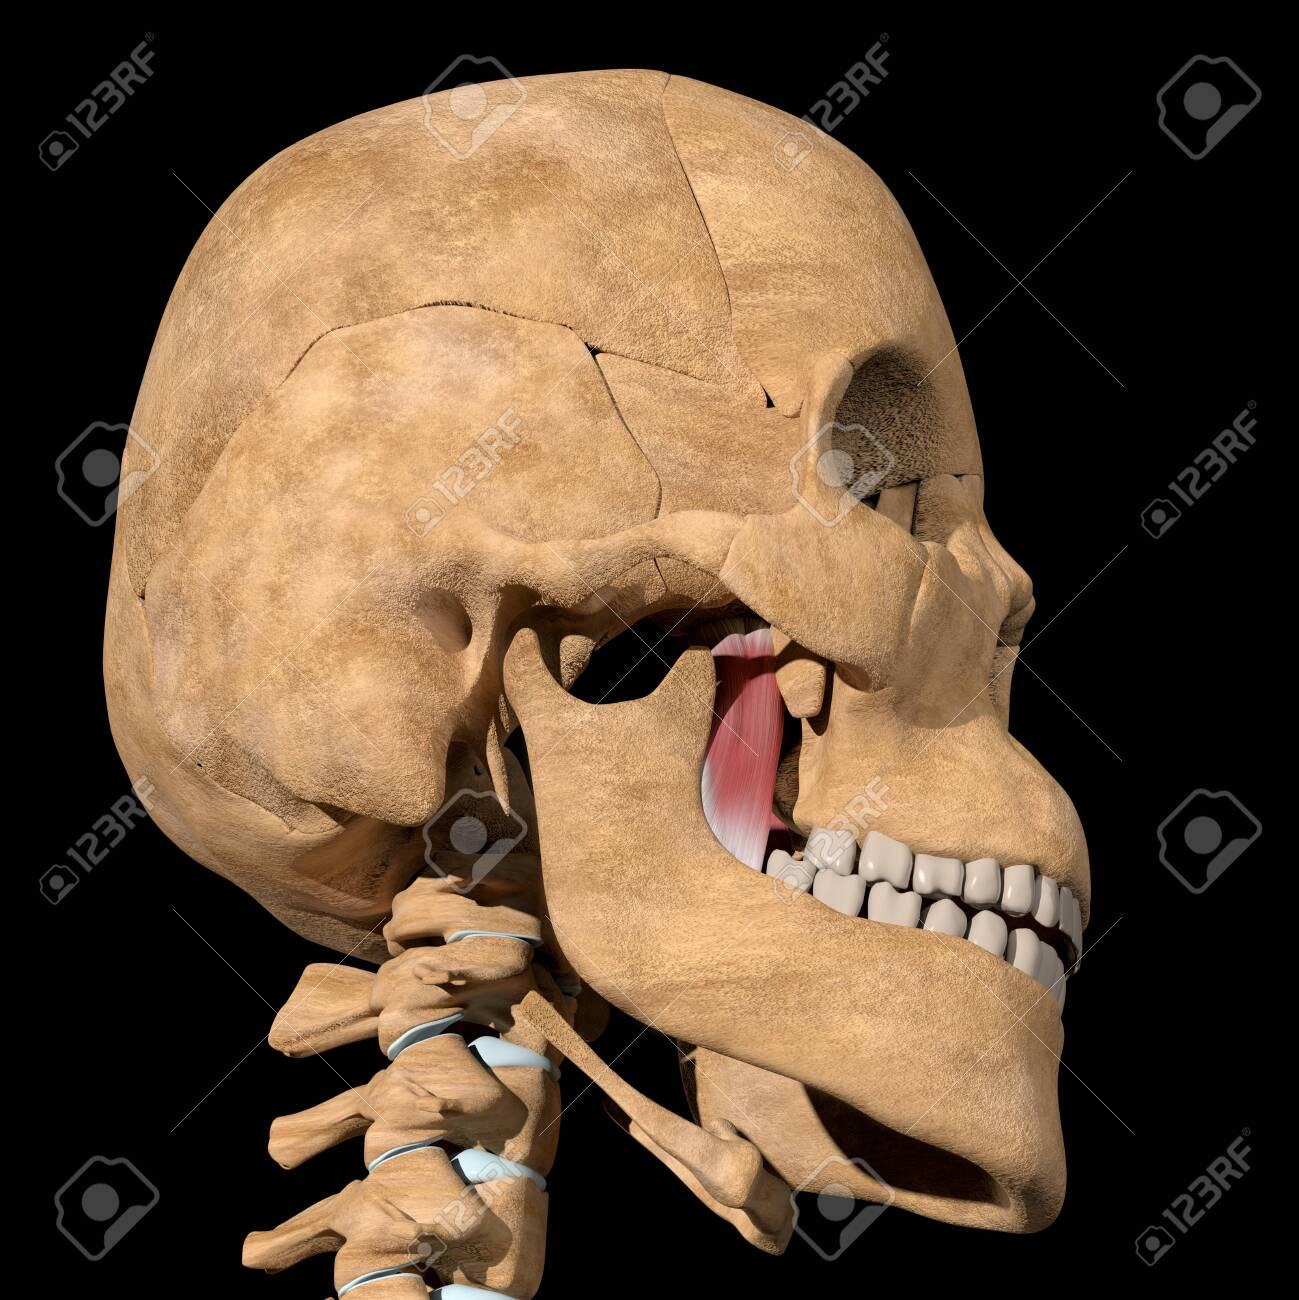 This is a 3d illustration of the medial pterygoid muscles on skeleton - 141461344